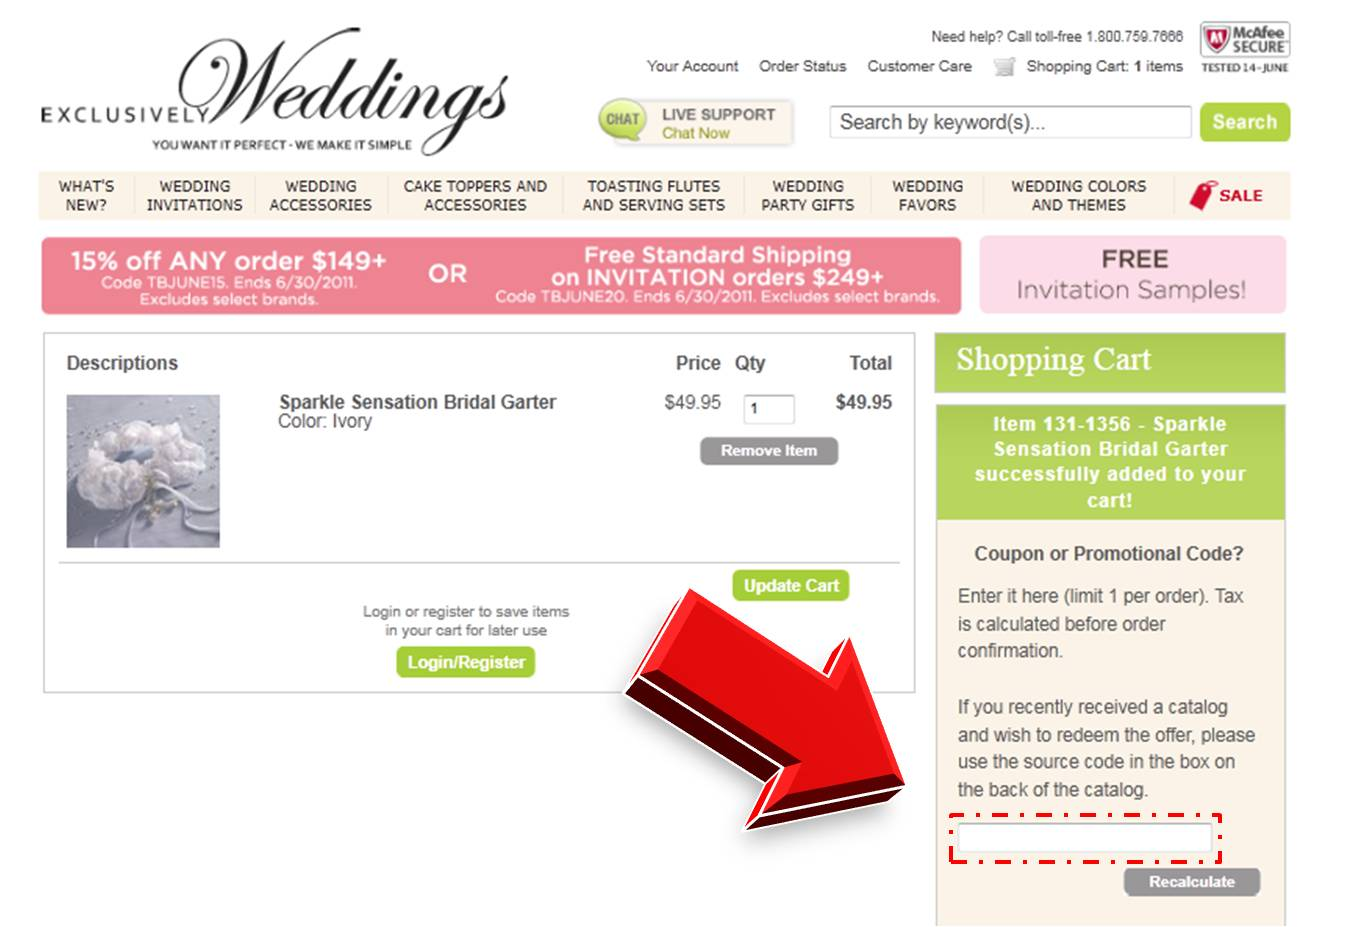 Exclusively Weddings Promo Code | Promo Code